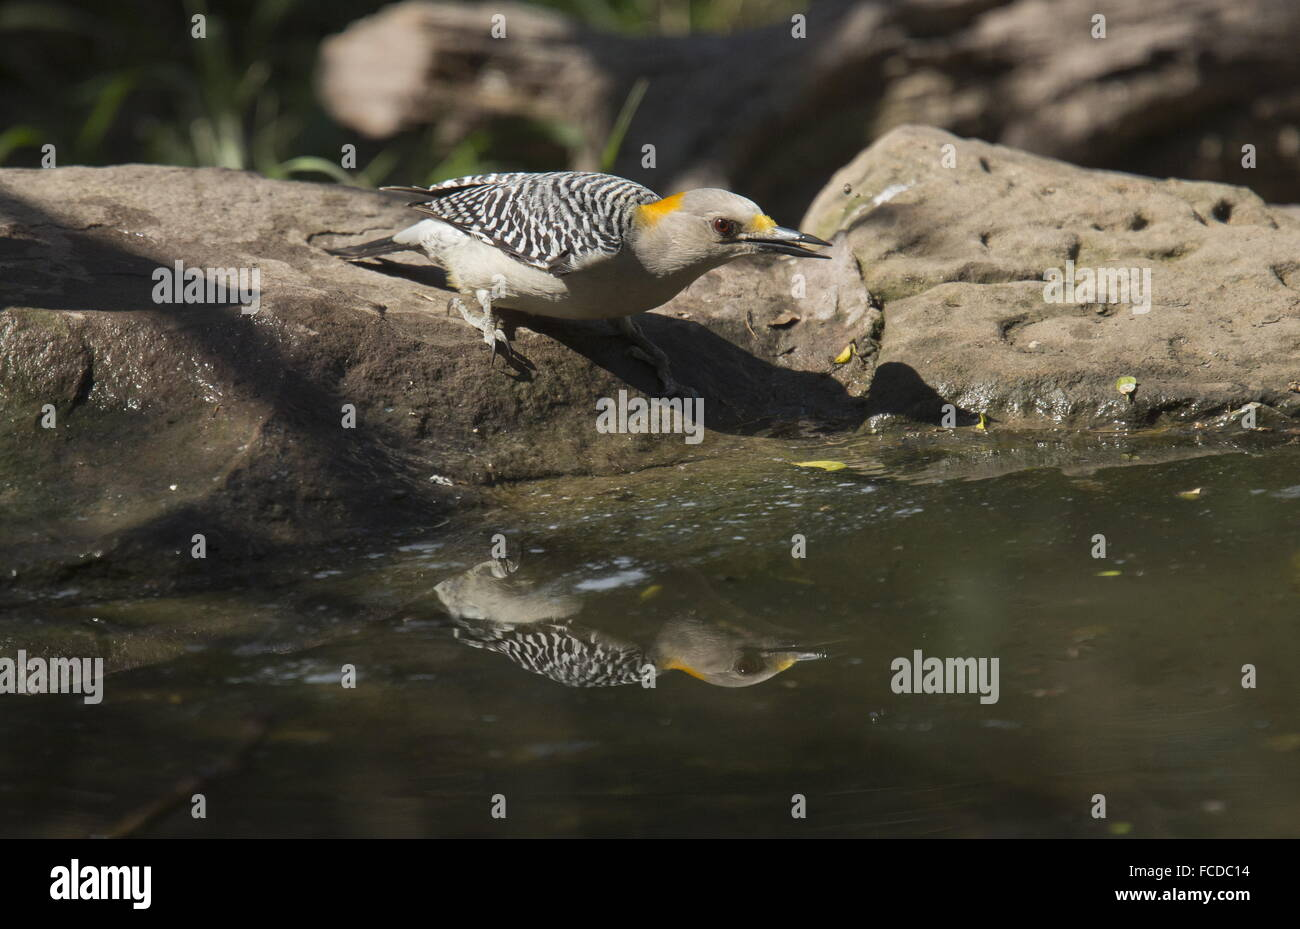 Golden-fronted Woodpecker, Melanerpes aurifrons - male drinking. Texas. Stock Photo